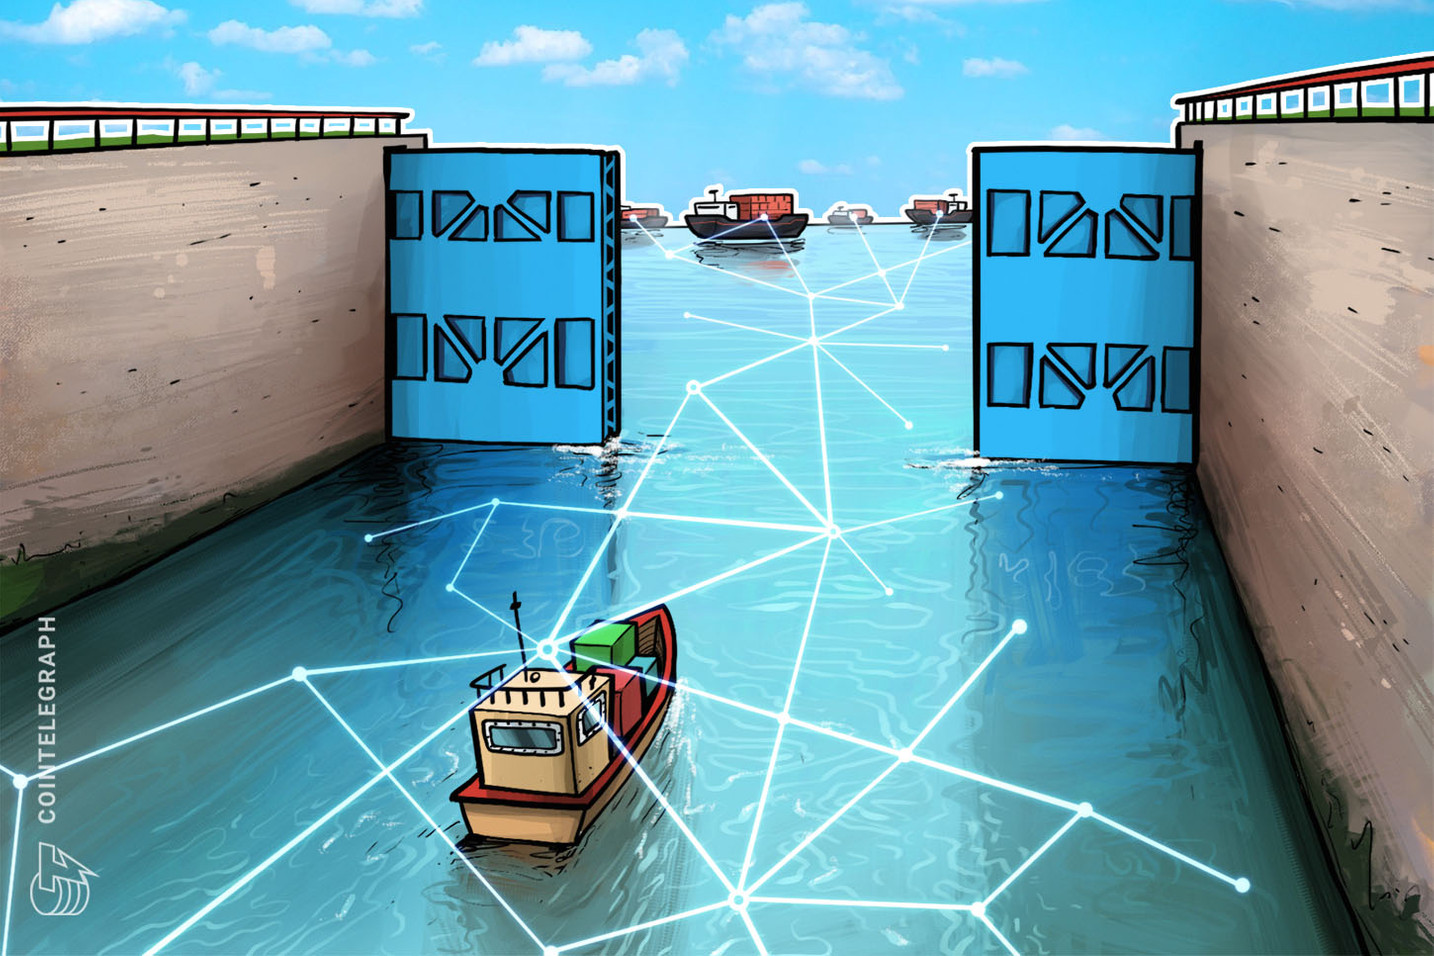 Russia: Cargo Shipping Firm to Use Blockchain in Port Logistics